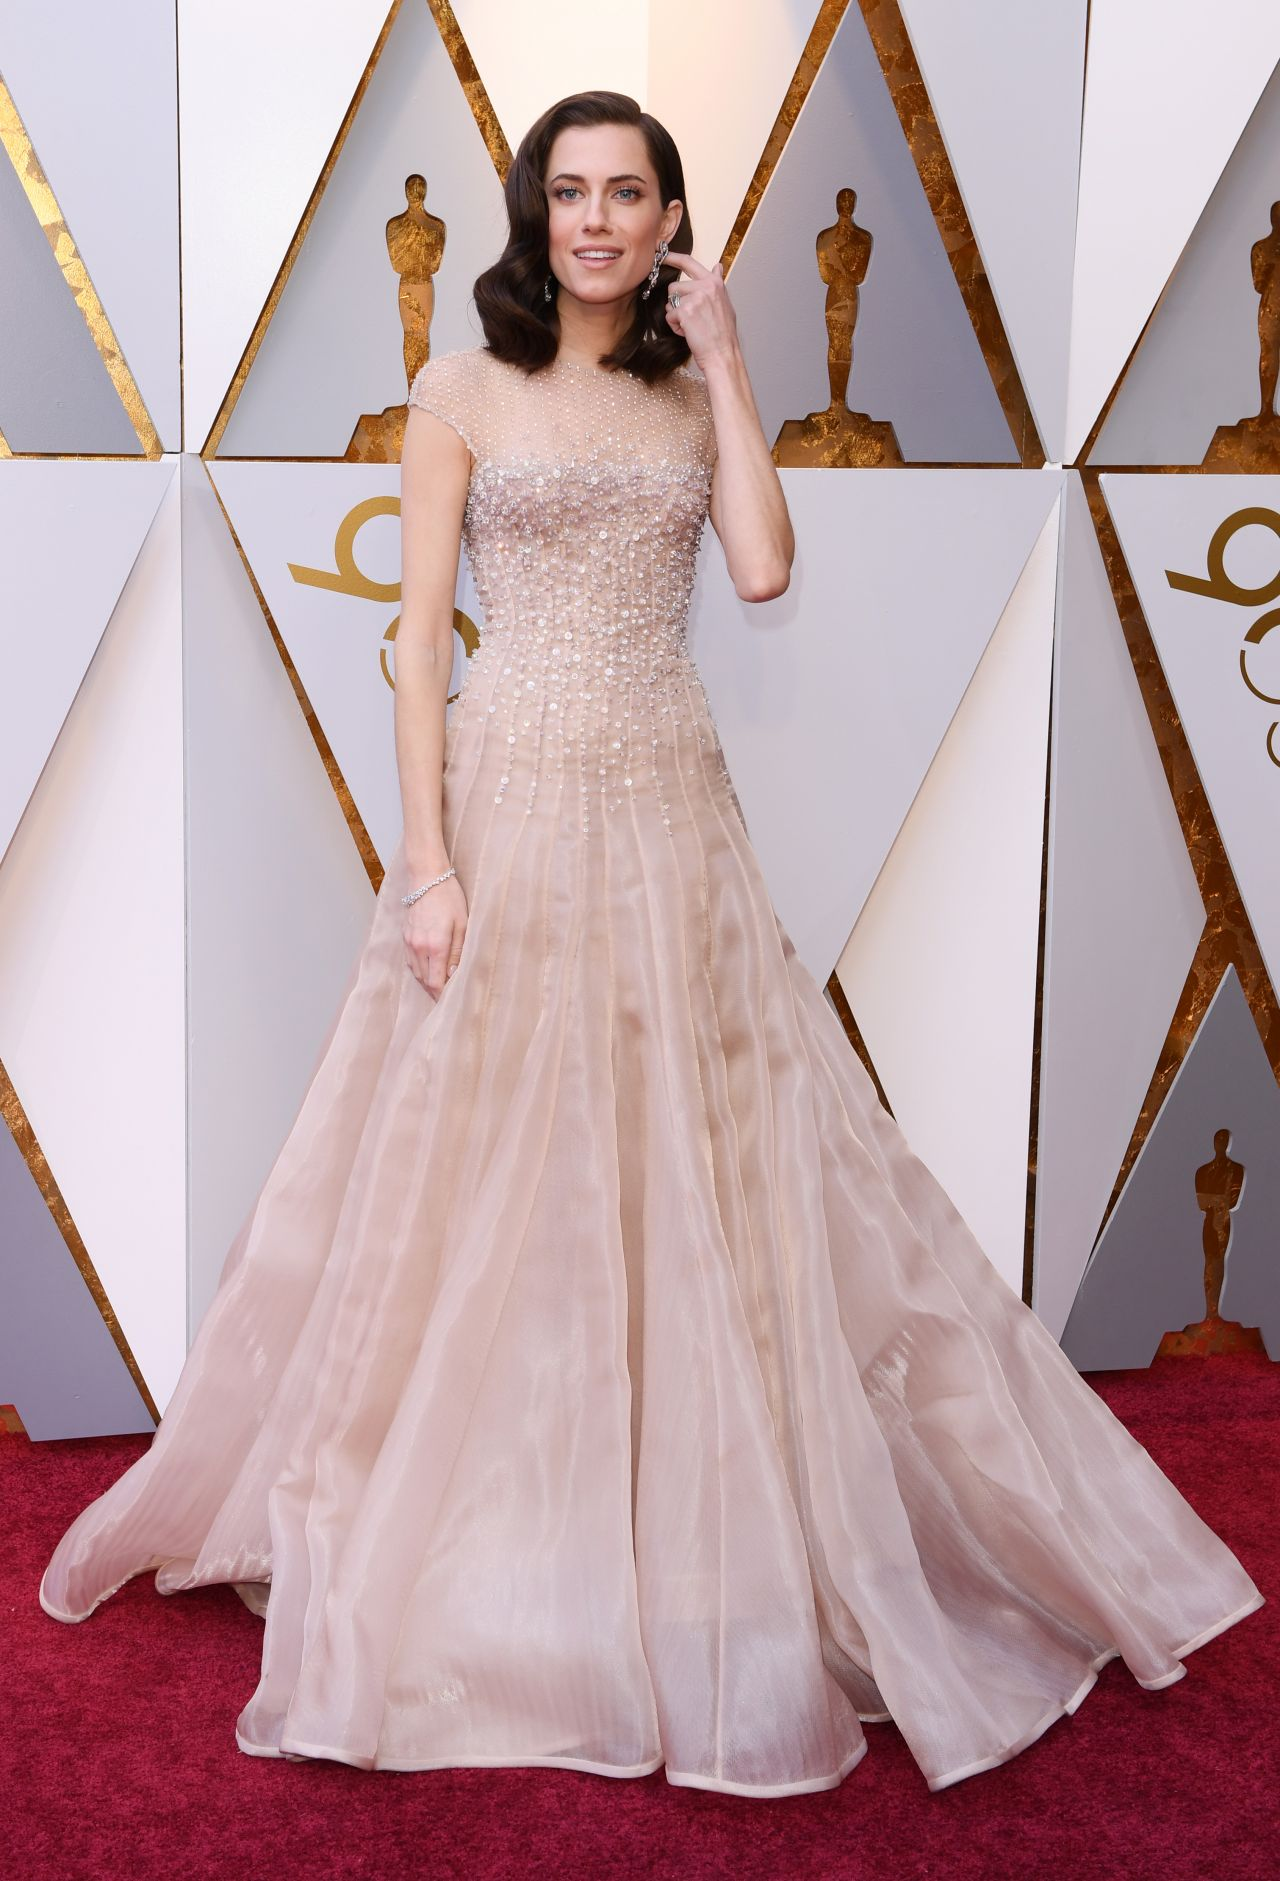 http://celebmafia.com/wp-content/uploads/2018/03/allison-williams-oscars-2018-red-carpet-20.jpg